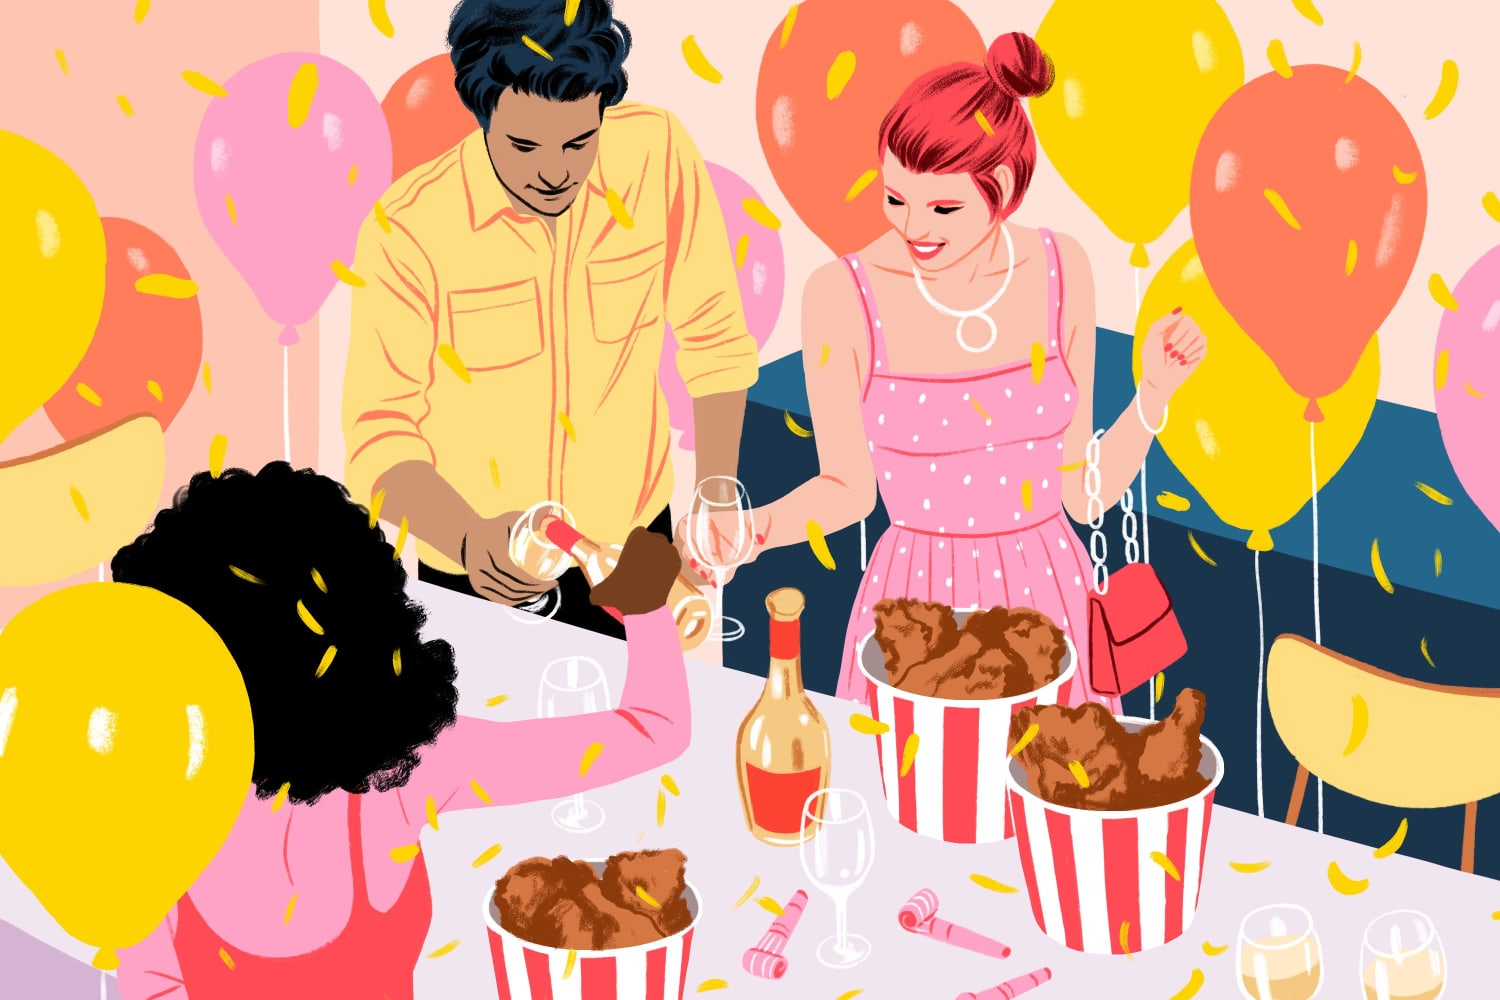 Why Takeout Fried Chicken and Sparkling Wine Is the Ultimate New Year's Eve Dinner